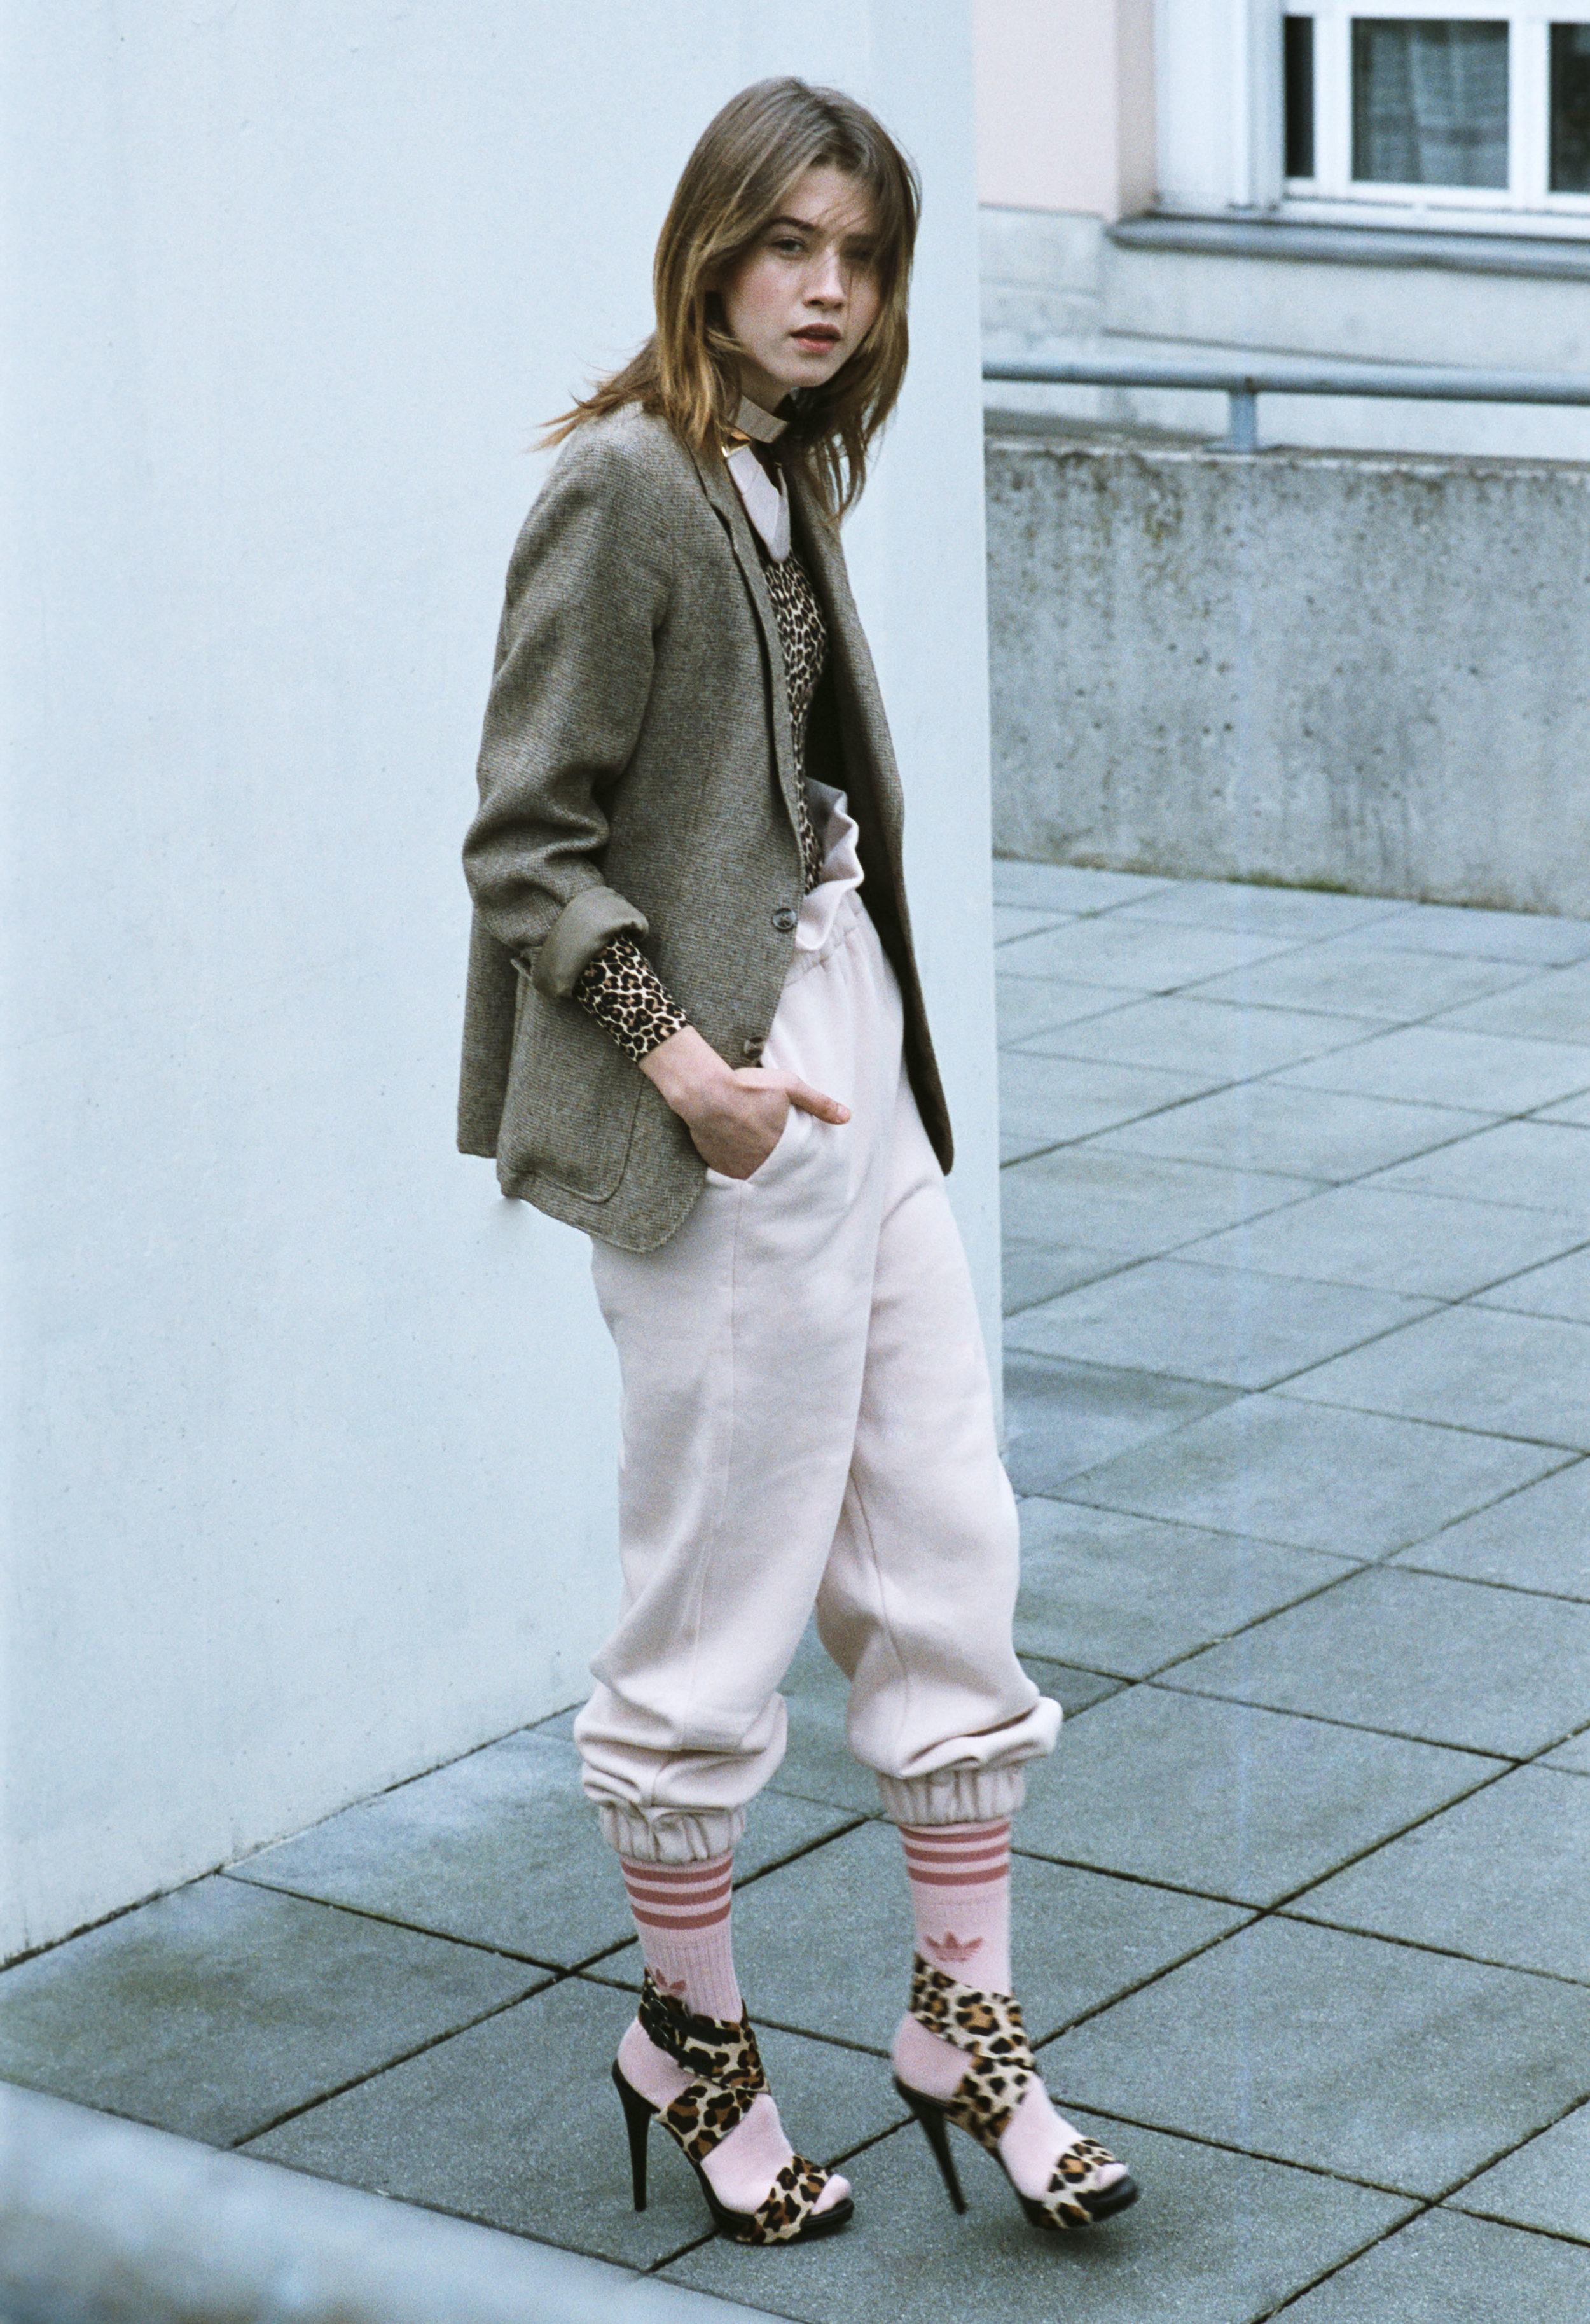 trousers  MARINA HOERMANSEDER , body  AMERICAN APPAREL , jacket VINTAGE, socks  ADIDAS,   necklaces   ASOS  +  H&M , shoes   ZARA